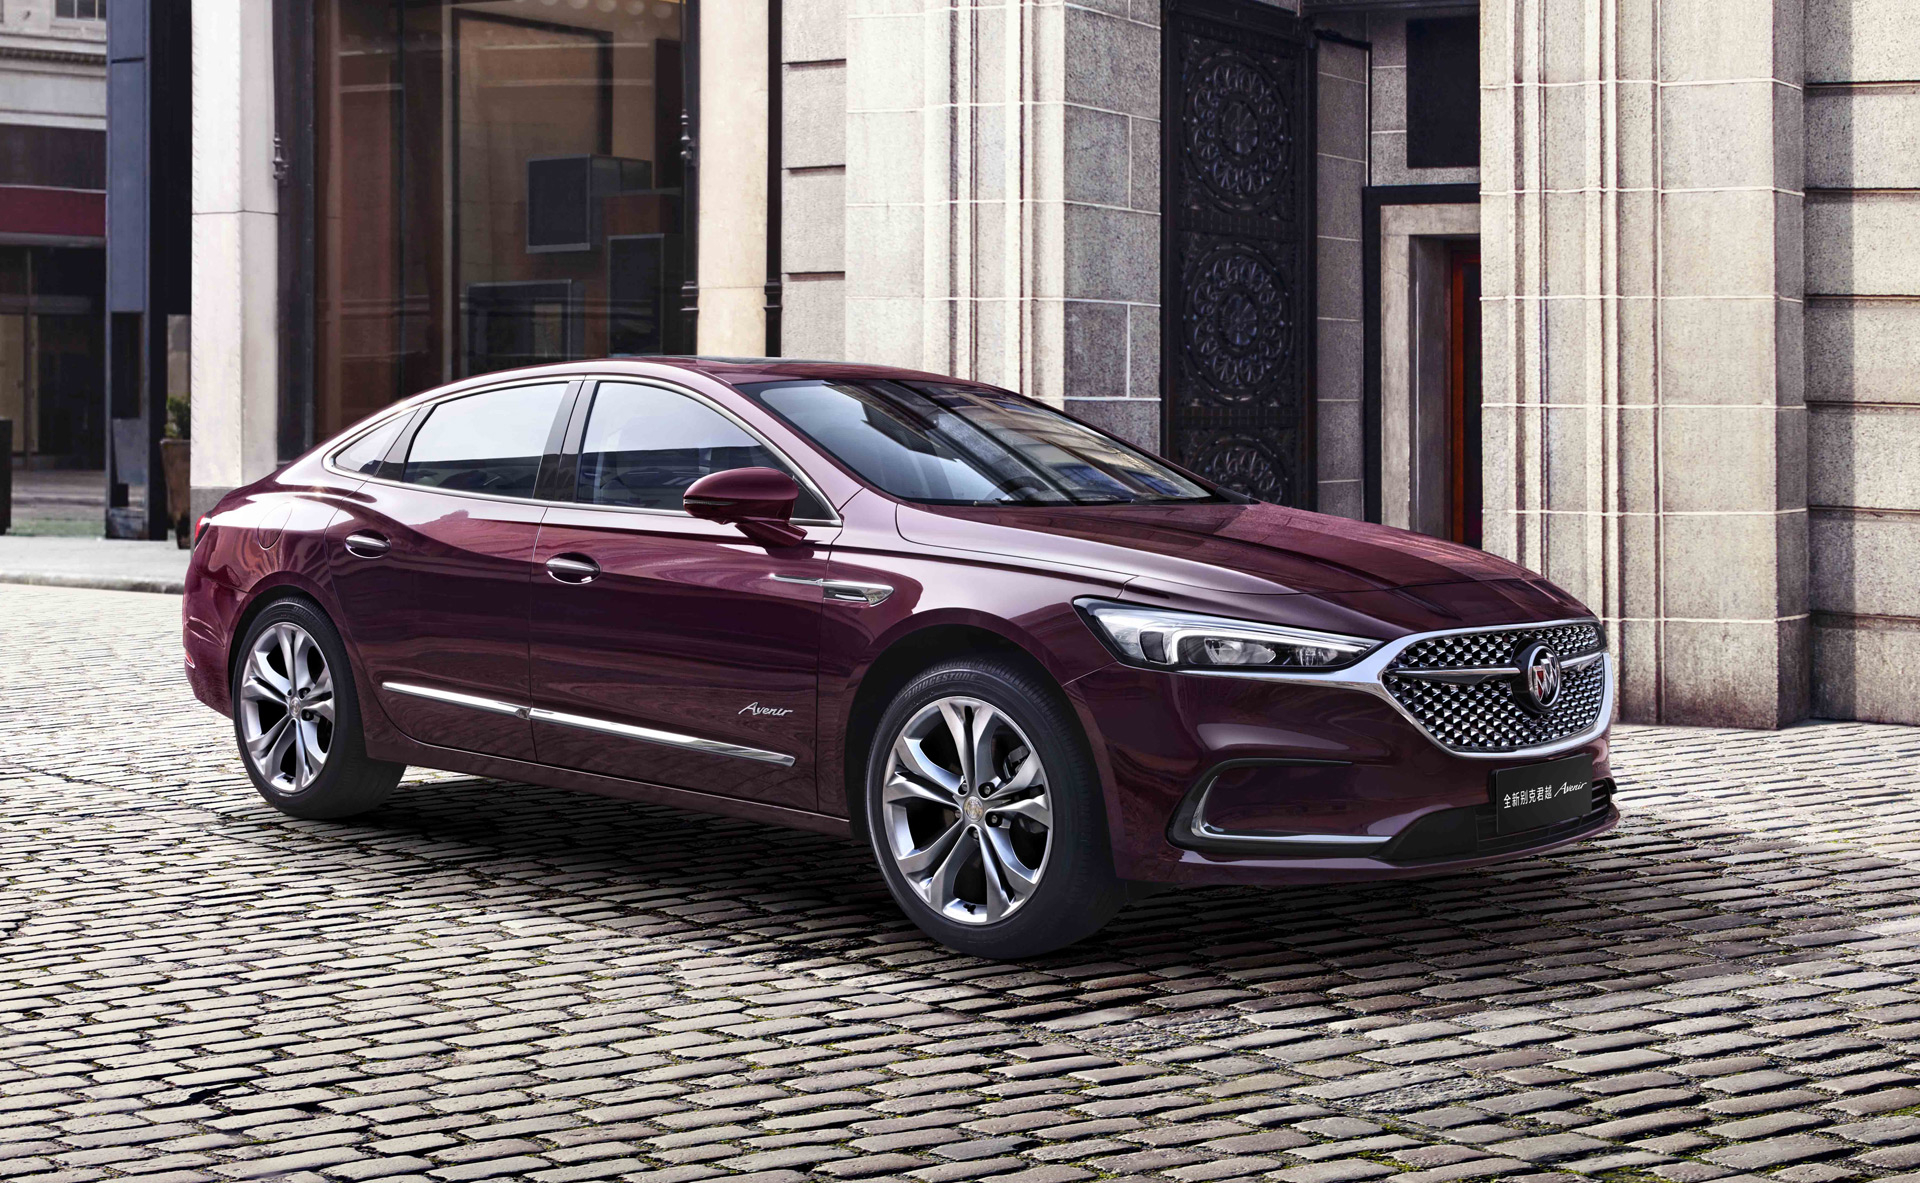 2020 Buick Lacrosse Made Handsome Just As It's Dropped In Us New 2021 Buick Lacrosse Cost, Awd, Build And Price